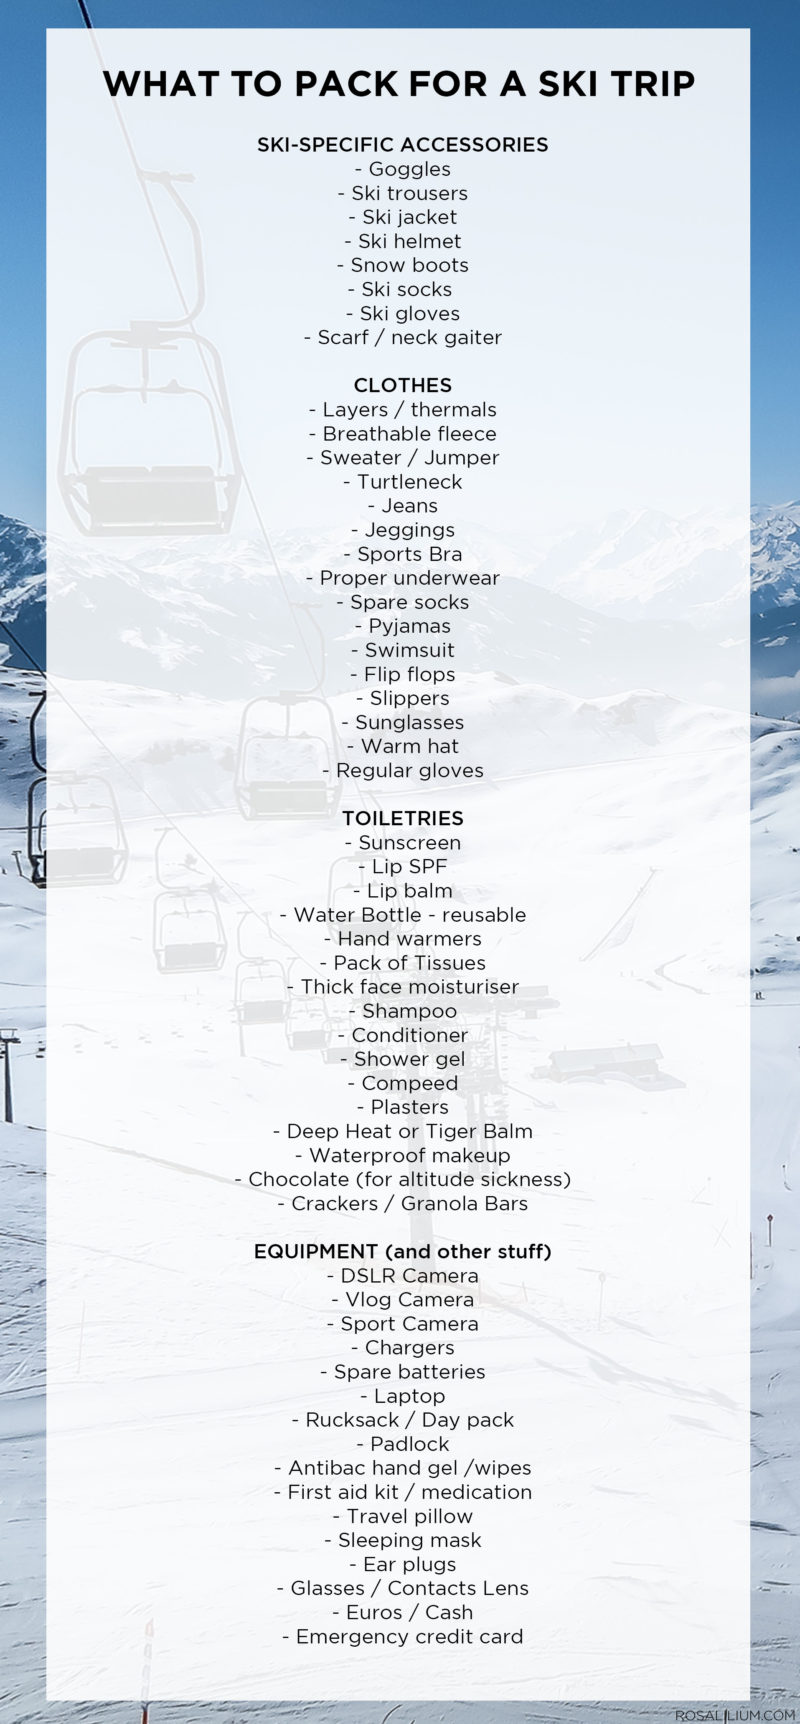 What to pack for a ski trip - packing list